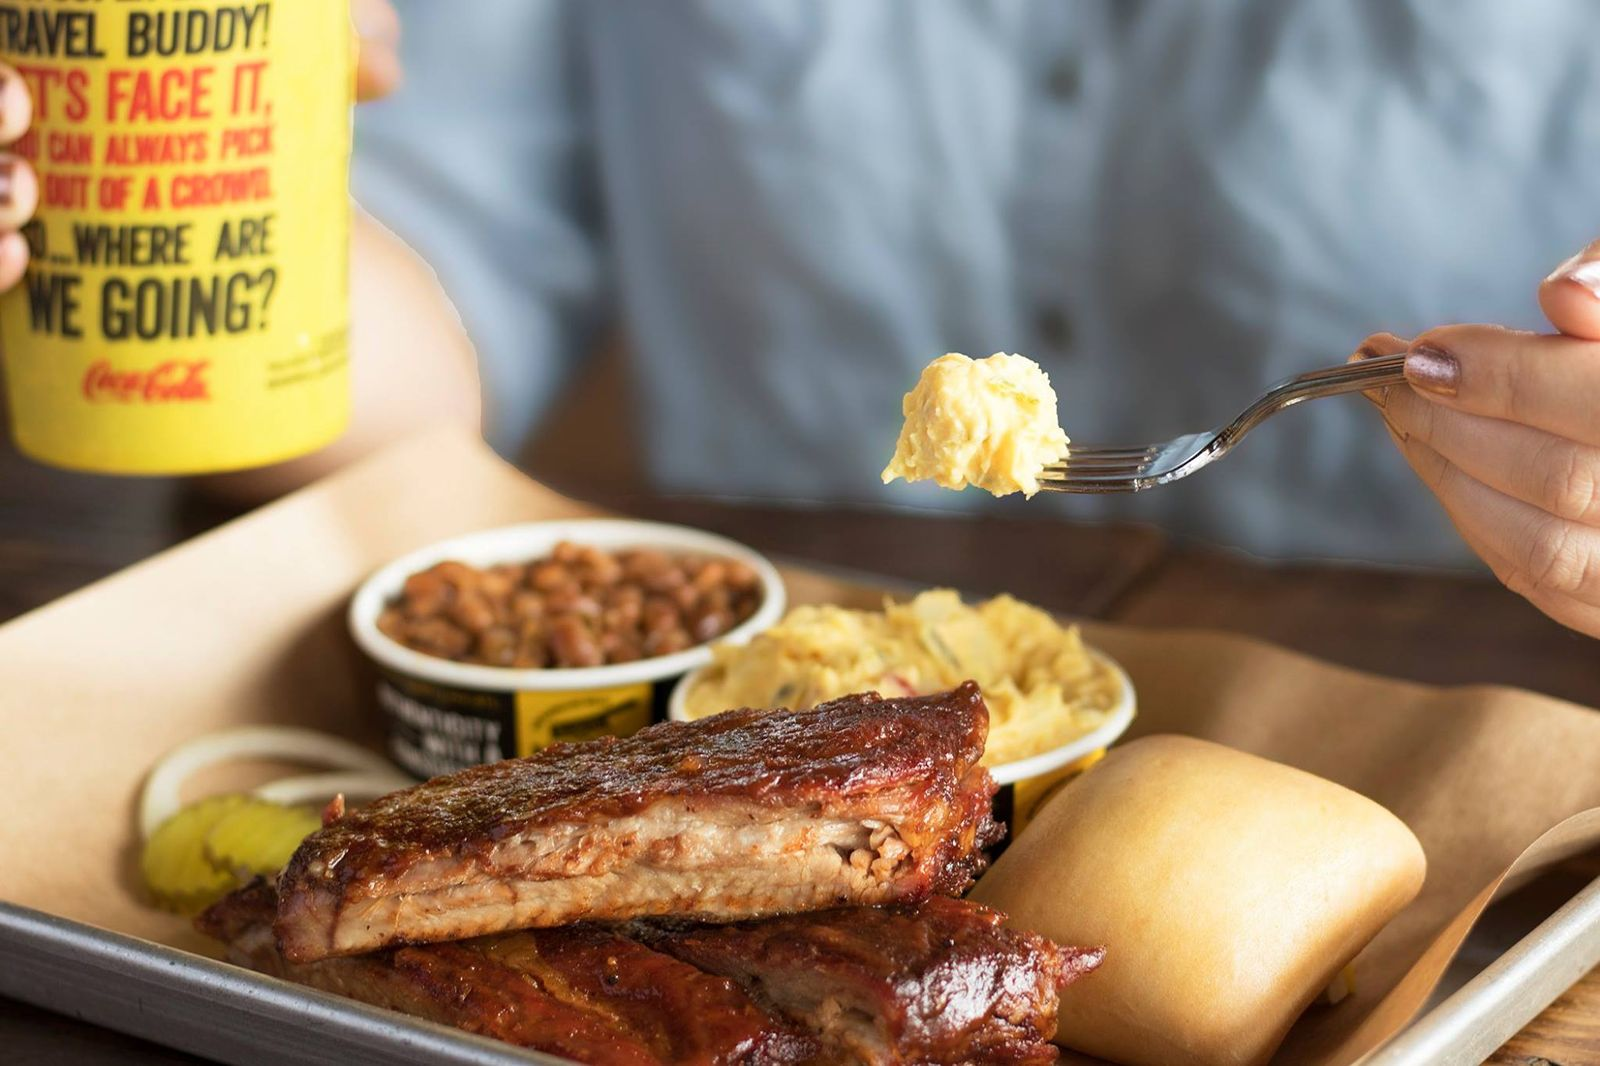 Local Entrepreneur Brings Multiple Dickey's Barbecue Pit Locations to Los Angeles